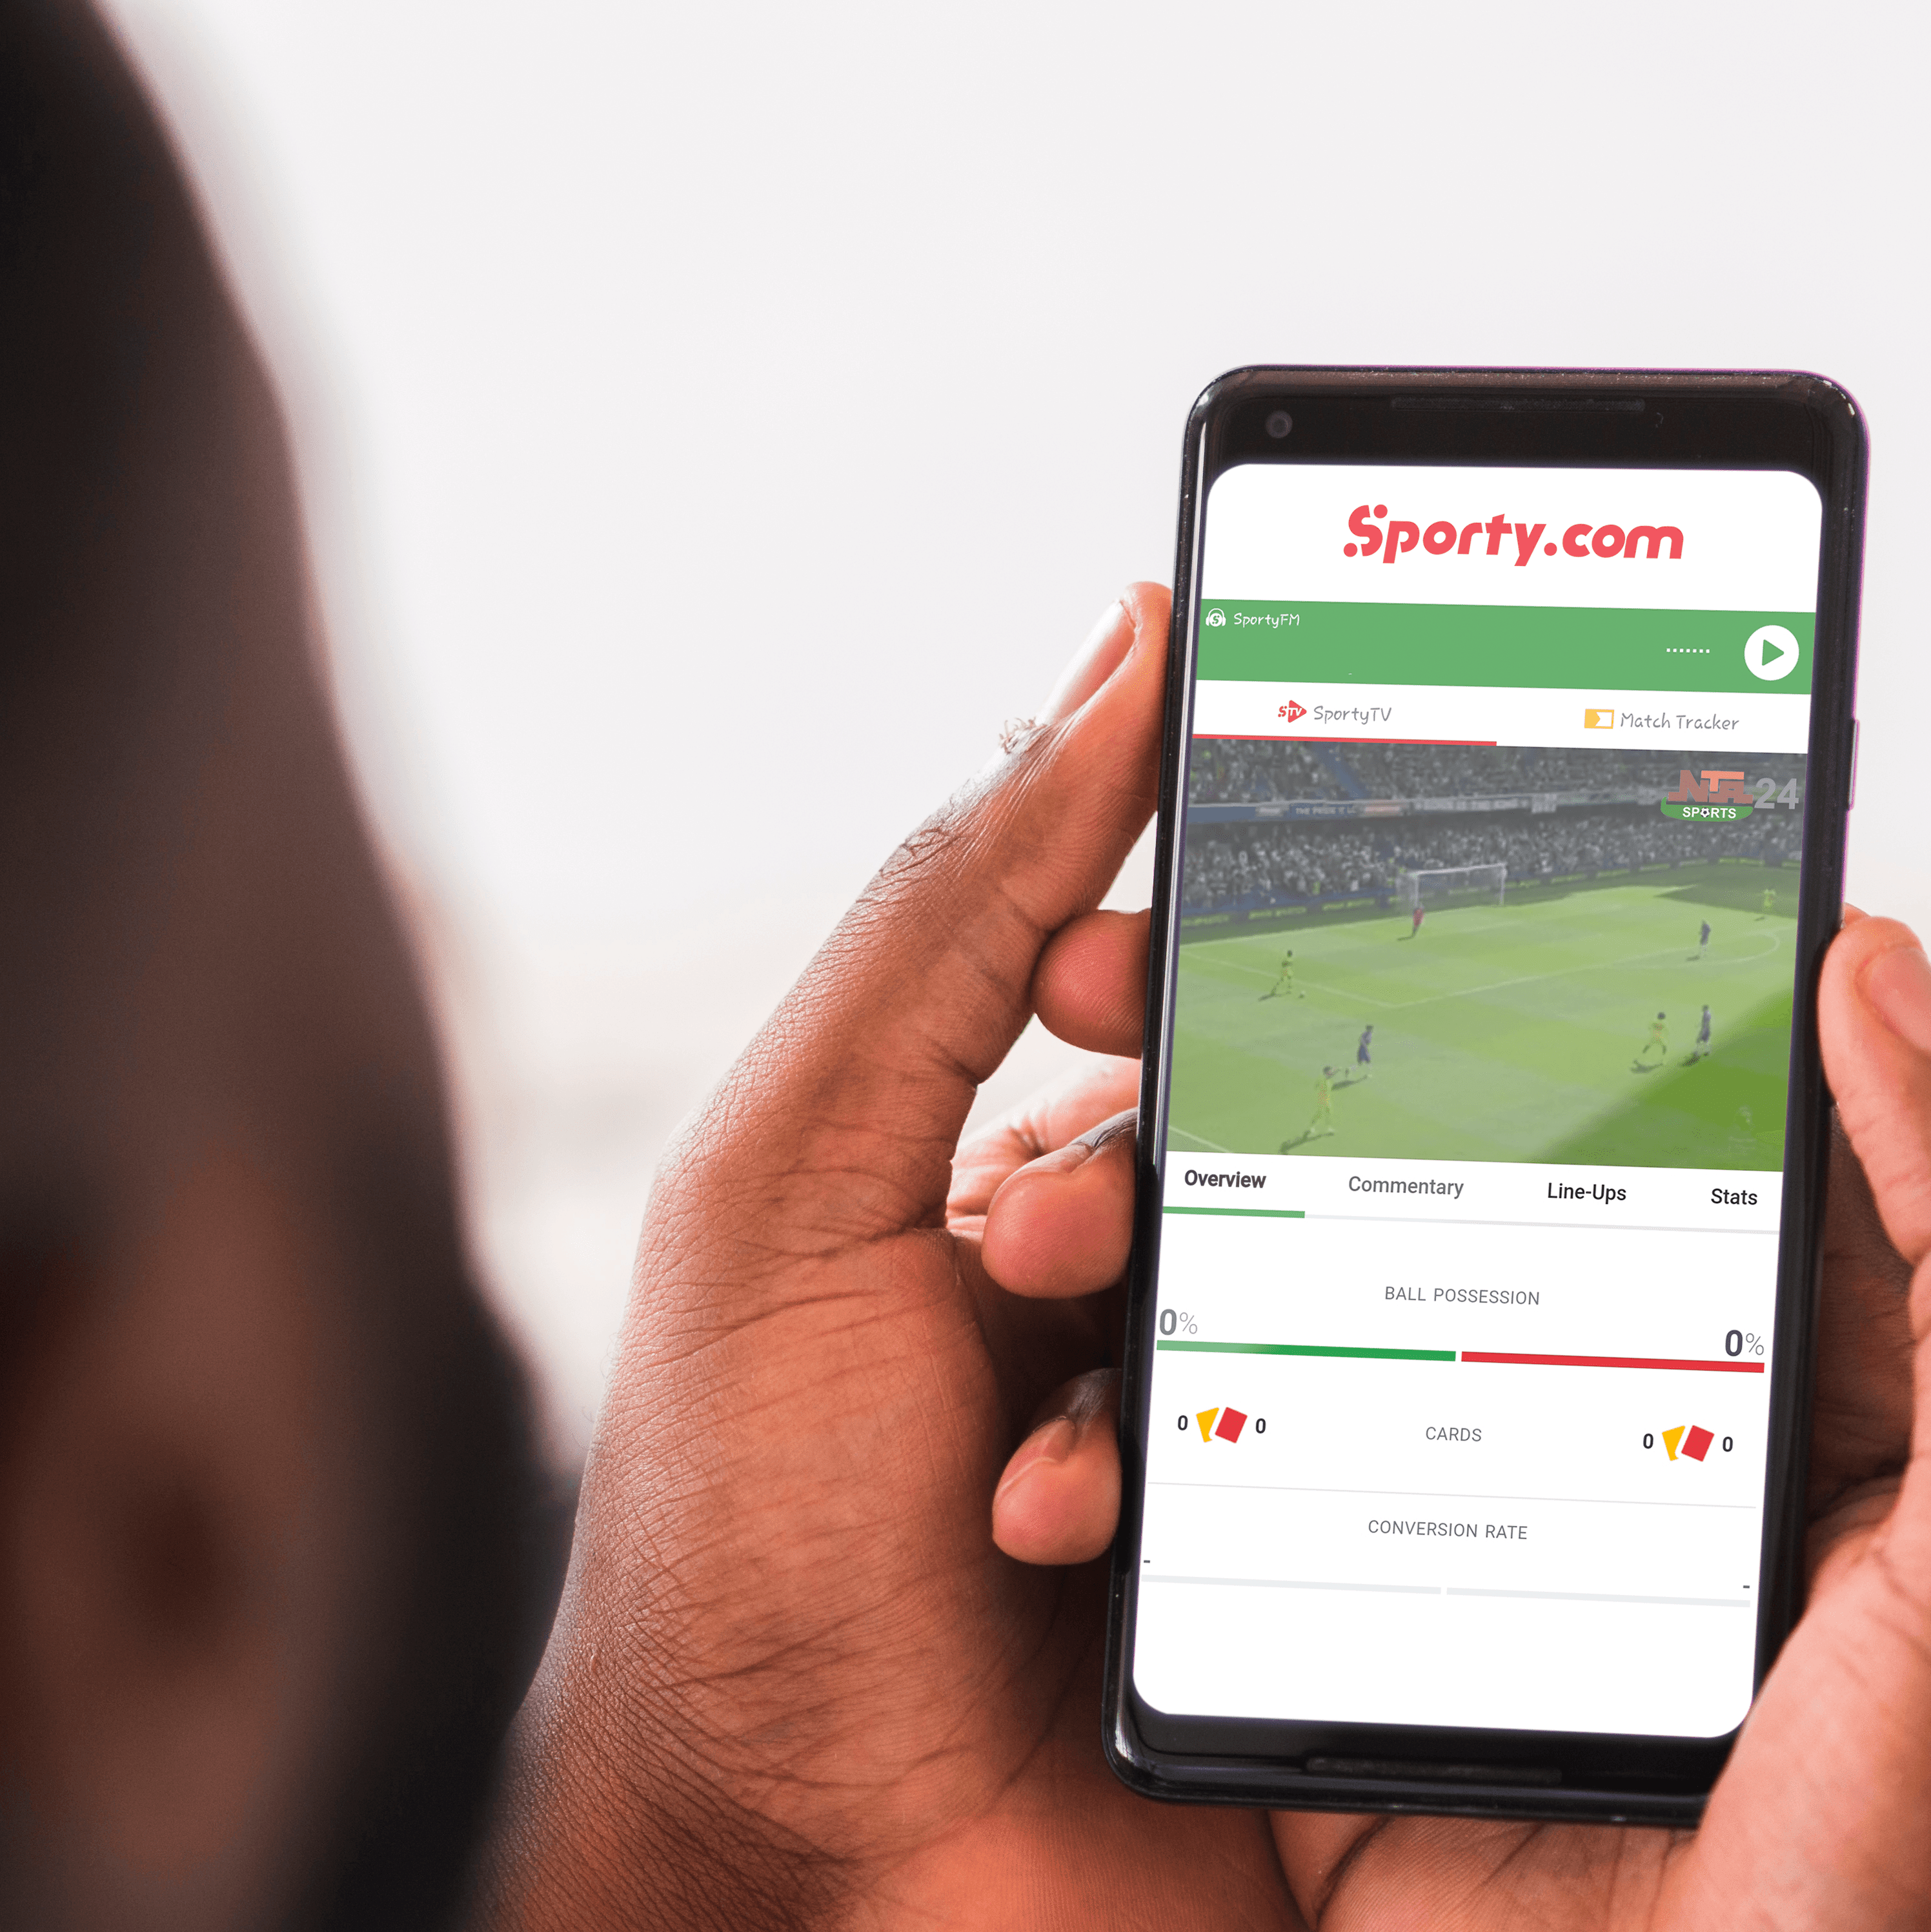 Sporty.com becomes NTA's simulcast partner in Nigeria for its free-to-air broadcast